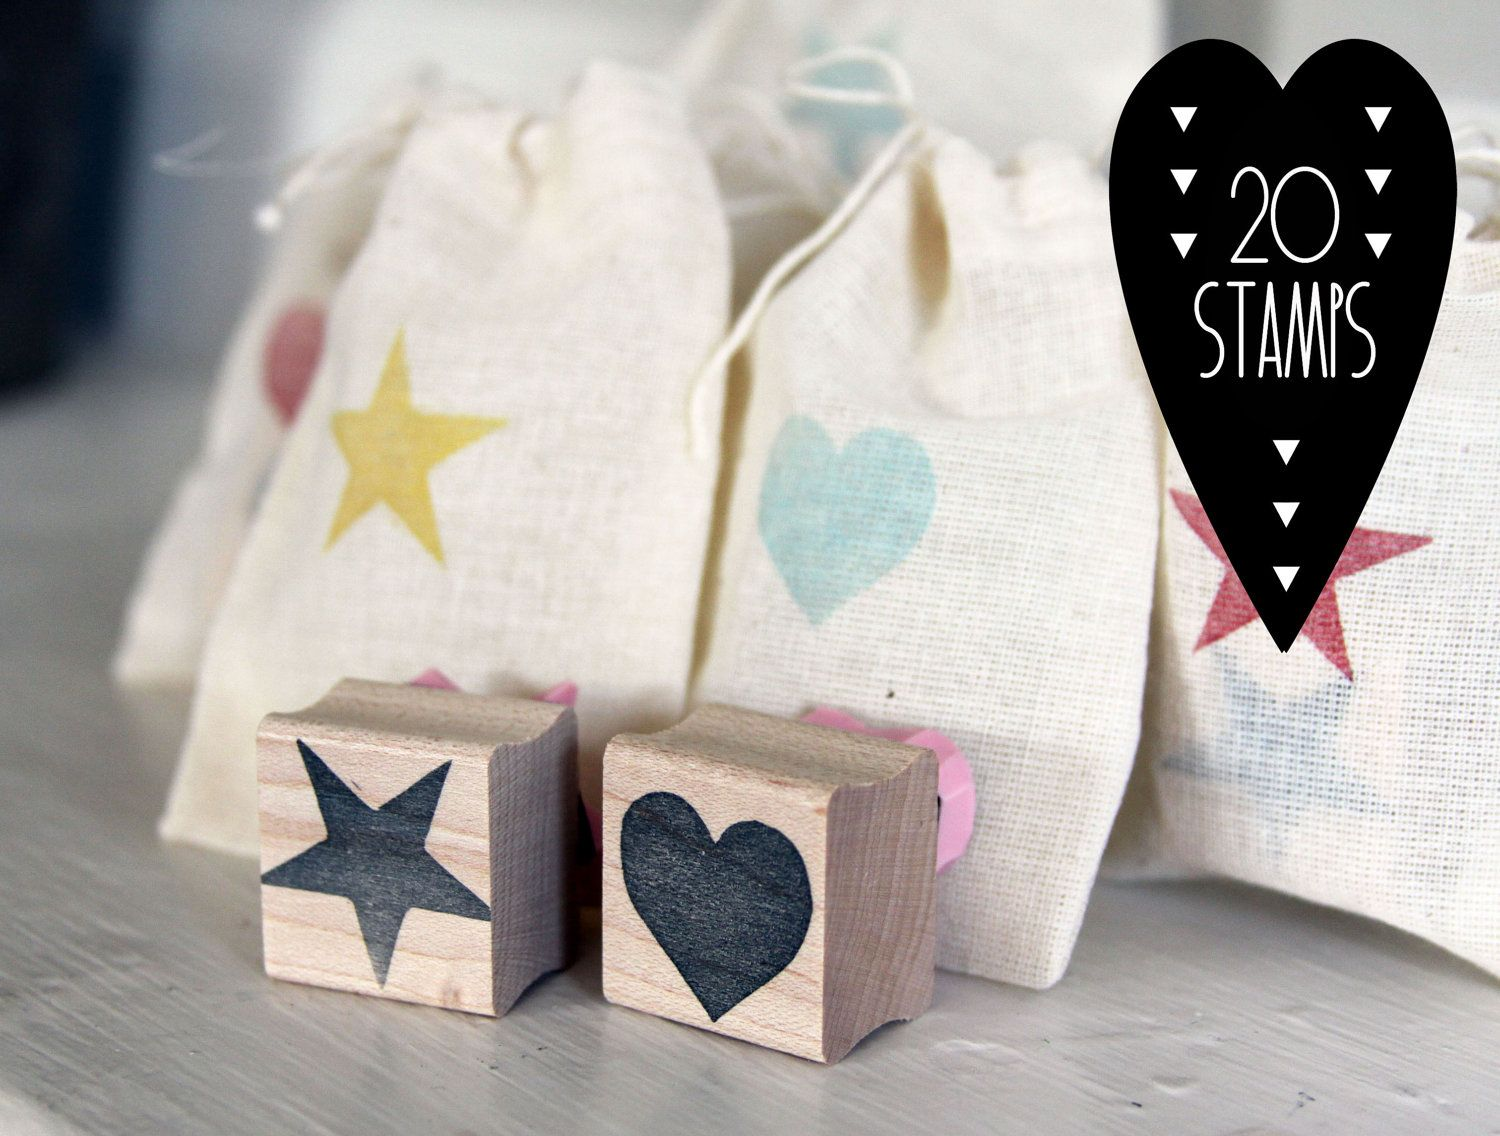 Heart and Star Wedding and Party Favor Stamps, 20 stamps. $65.00 ...